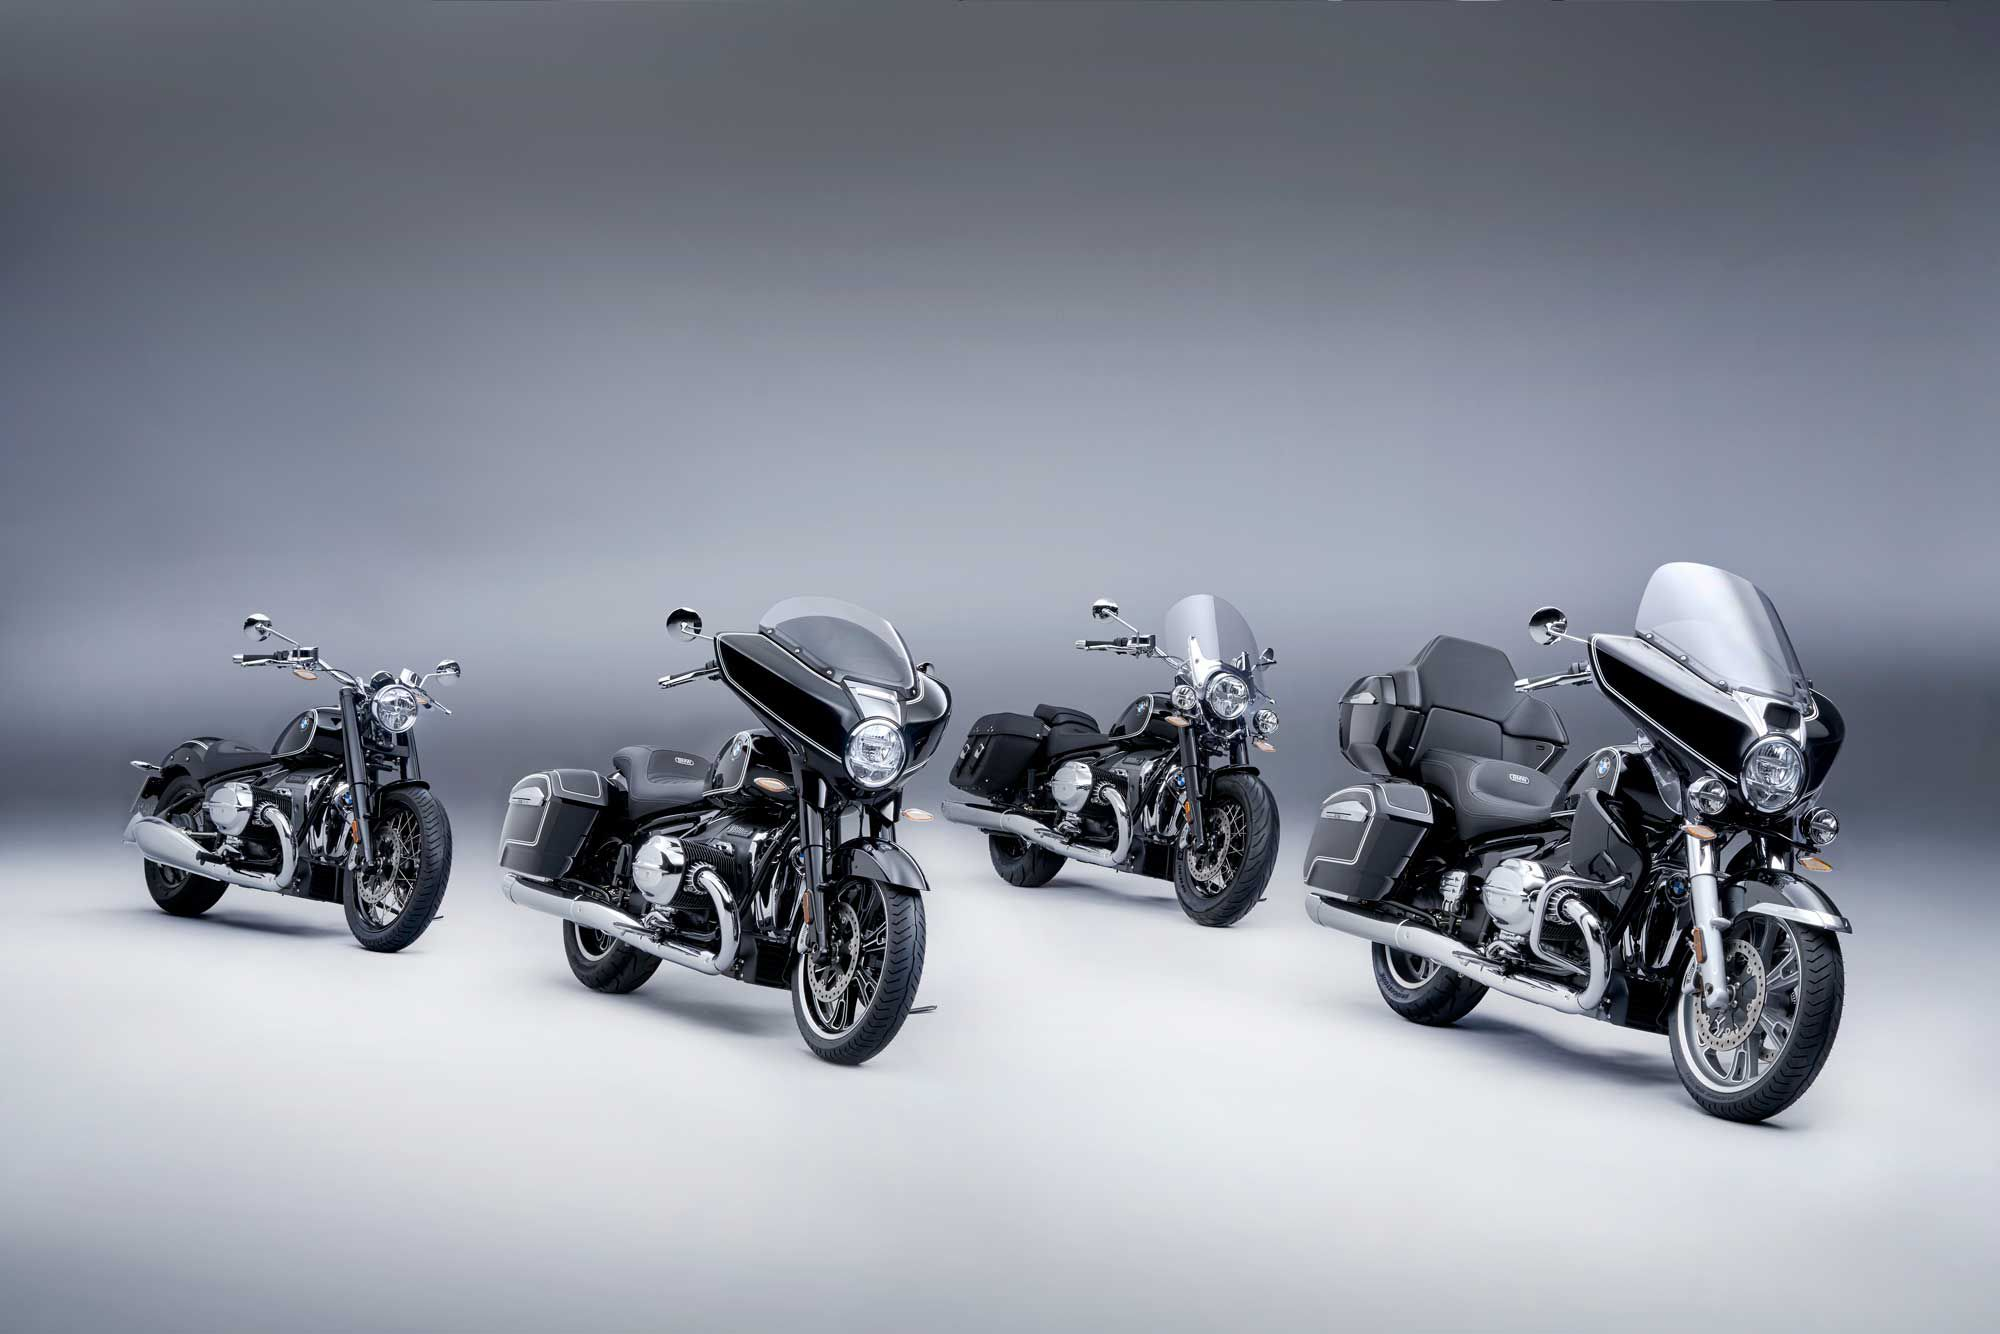 The family of BMW cruiser, including the R 18 and R 18 Classic along with the new R 18 B and R 18 Transcontinental.